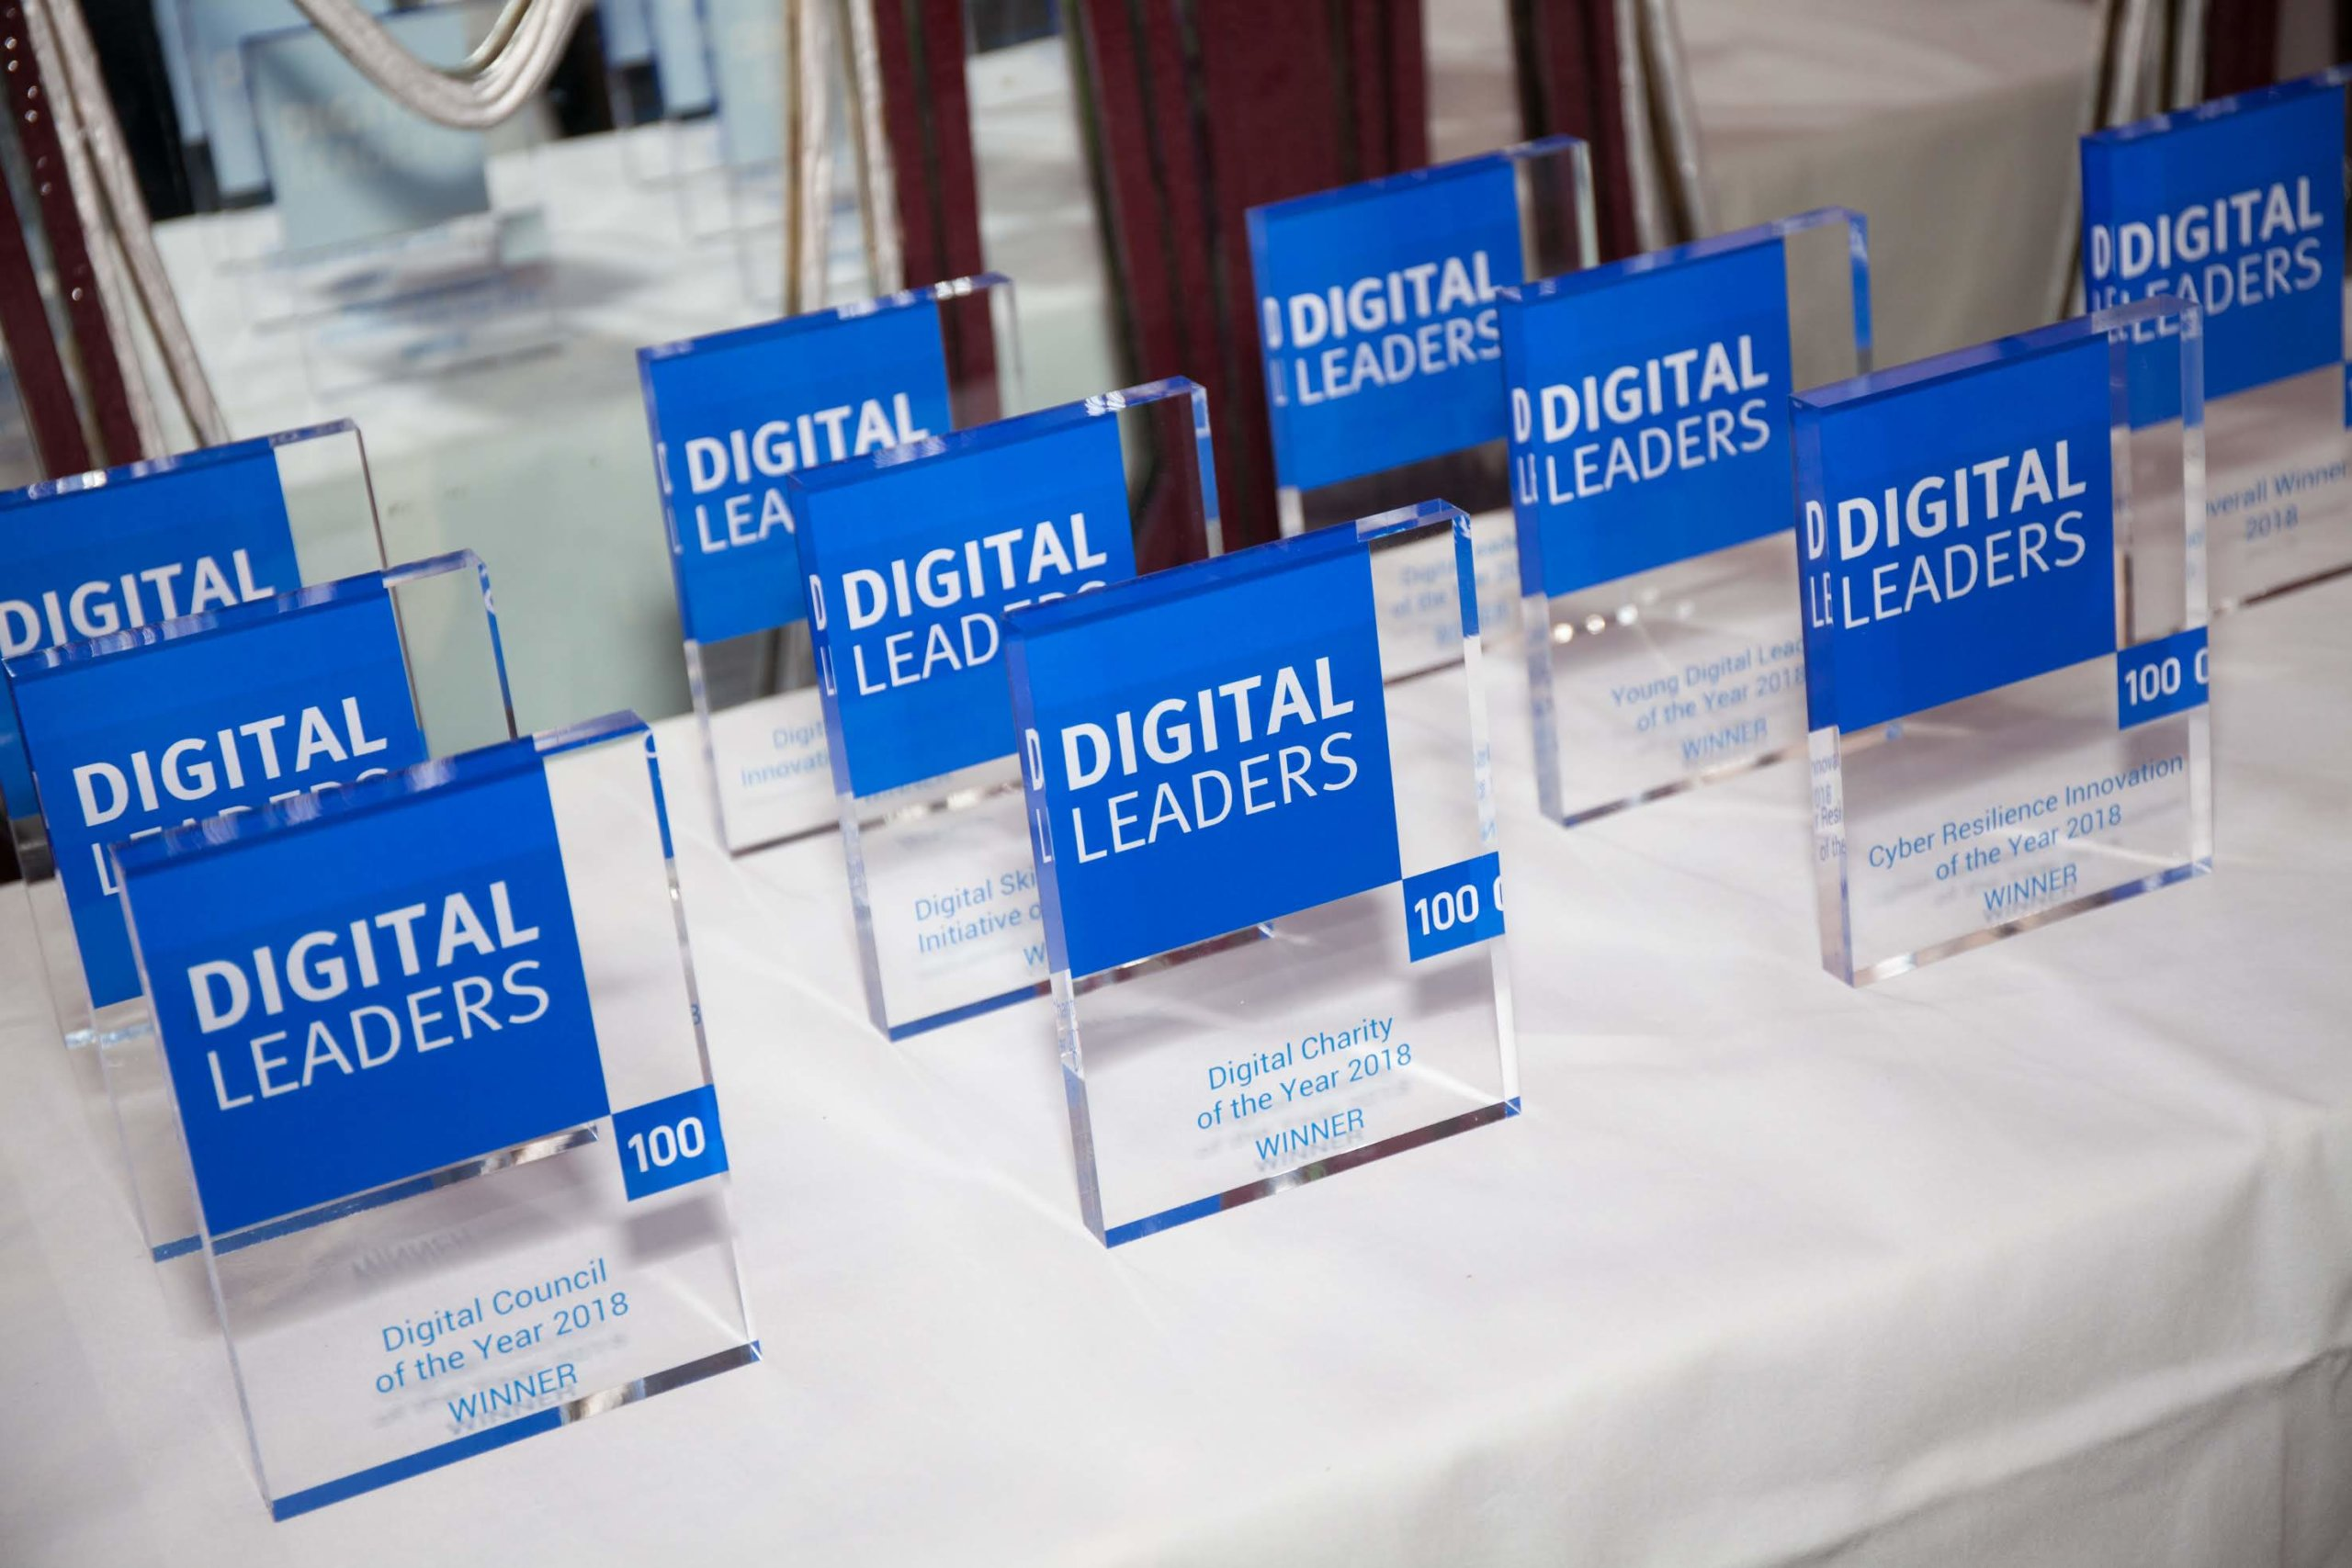 digital leaders, 5g, 5g-encode, Bristol , Bristol city, University of Bristol, private networks, private LTE network, private 5G network, network slicing, network splicing, network visualization , networking, GUI, network topology, dashboard, wireless, LTE, LAN, 5G, Wi-Fi, mobile, network automation, network optimisation, network visibility, network monitoring